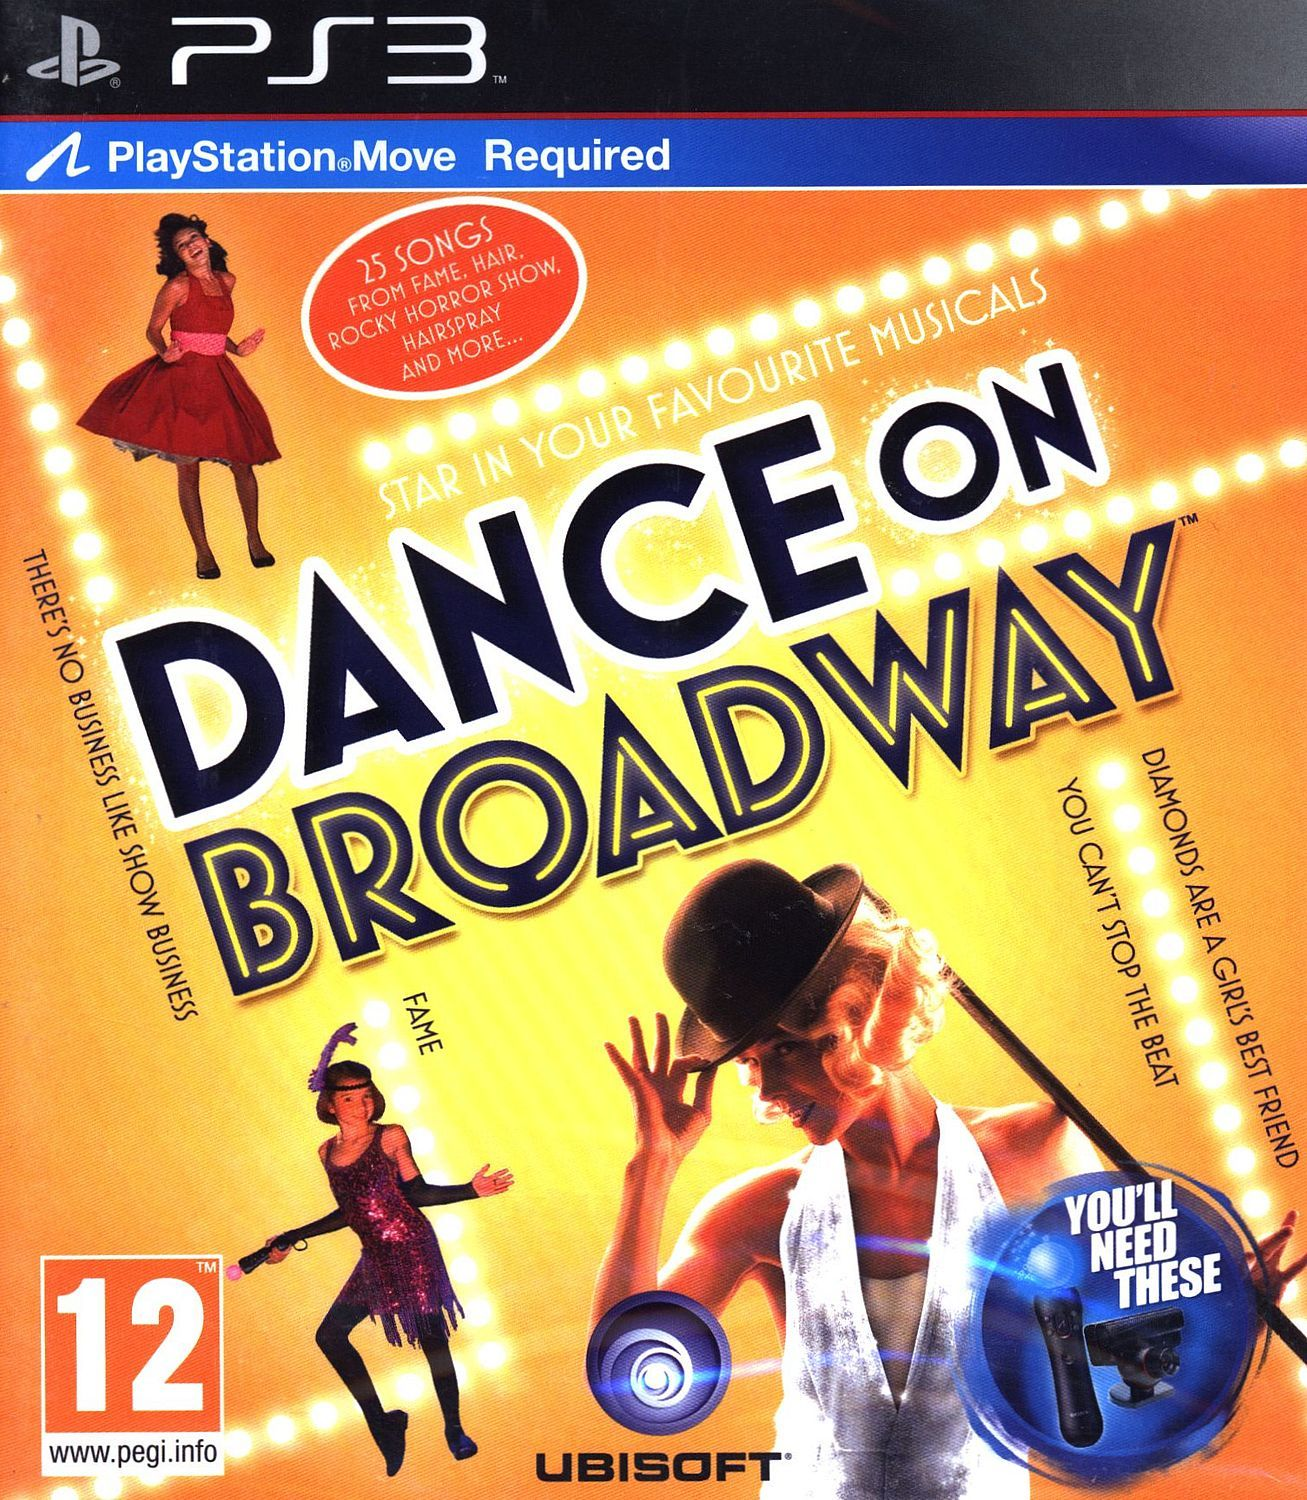 Dance On Broadway (PS3) - 1